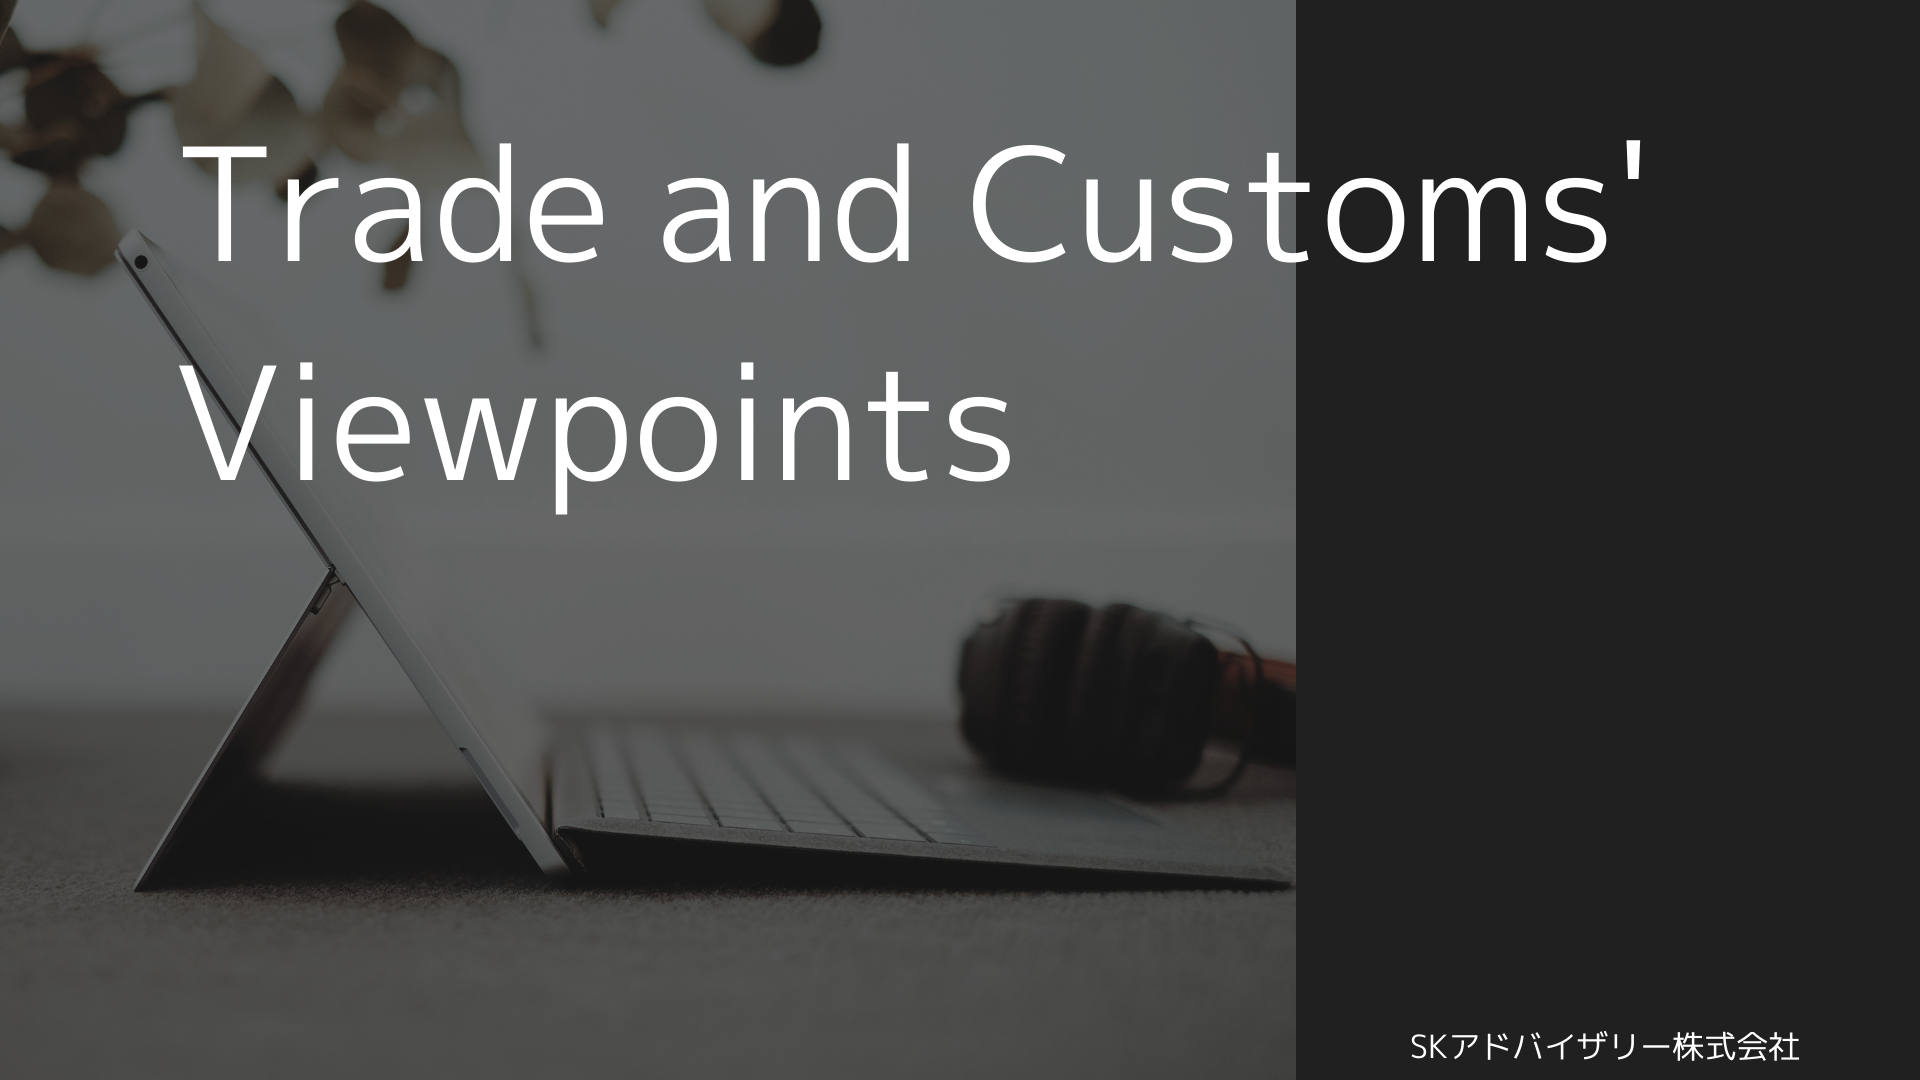 Trade and Customs' viewpoint